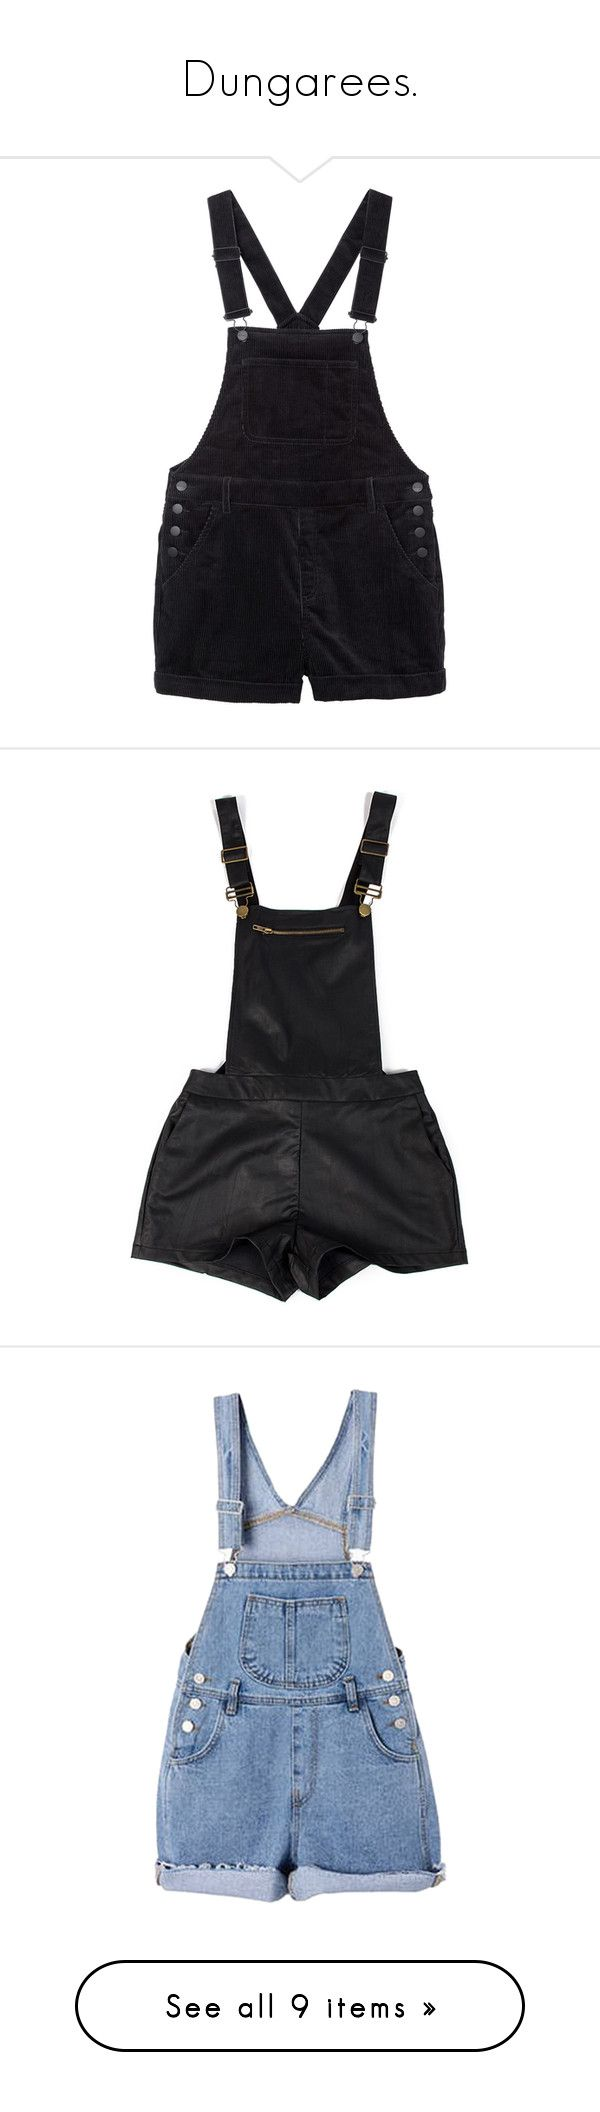 """""""Dungarees."""" by juurisha ❤ liked on Polyvore featuring jumpsuits, rompers, shorts, overalls, dresses, bottoms, black magic, dungaree overalls, bib overalls and short bib overalls"""